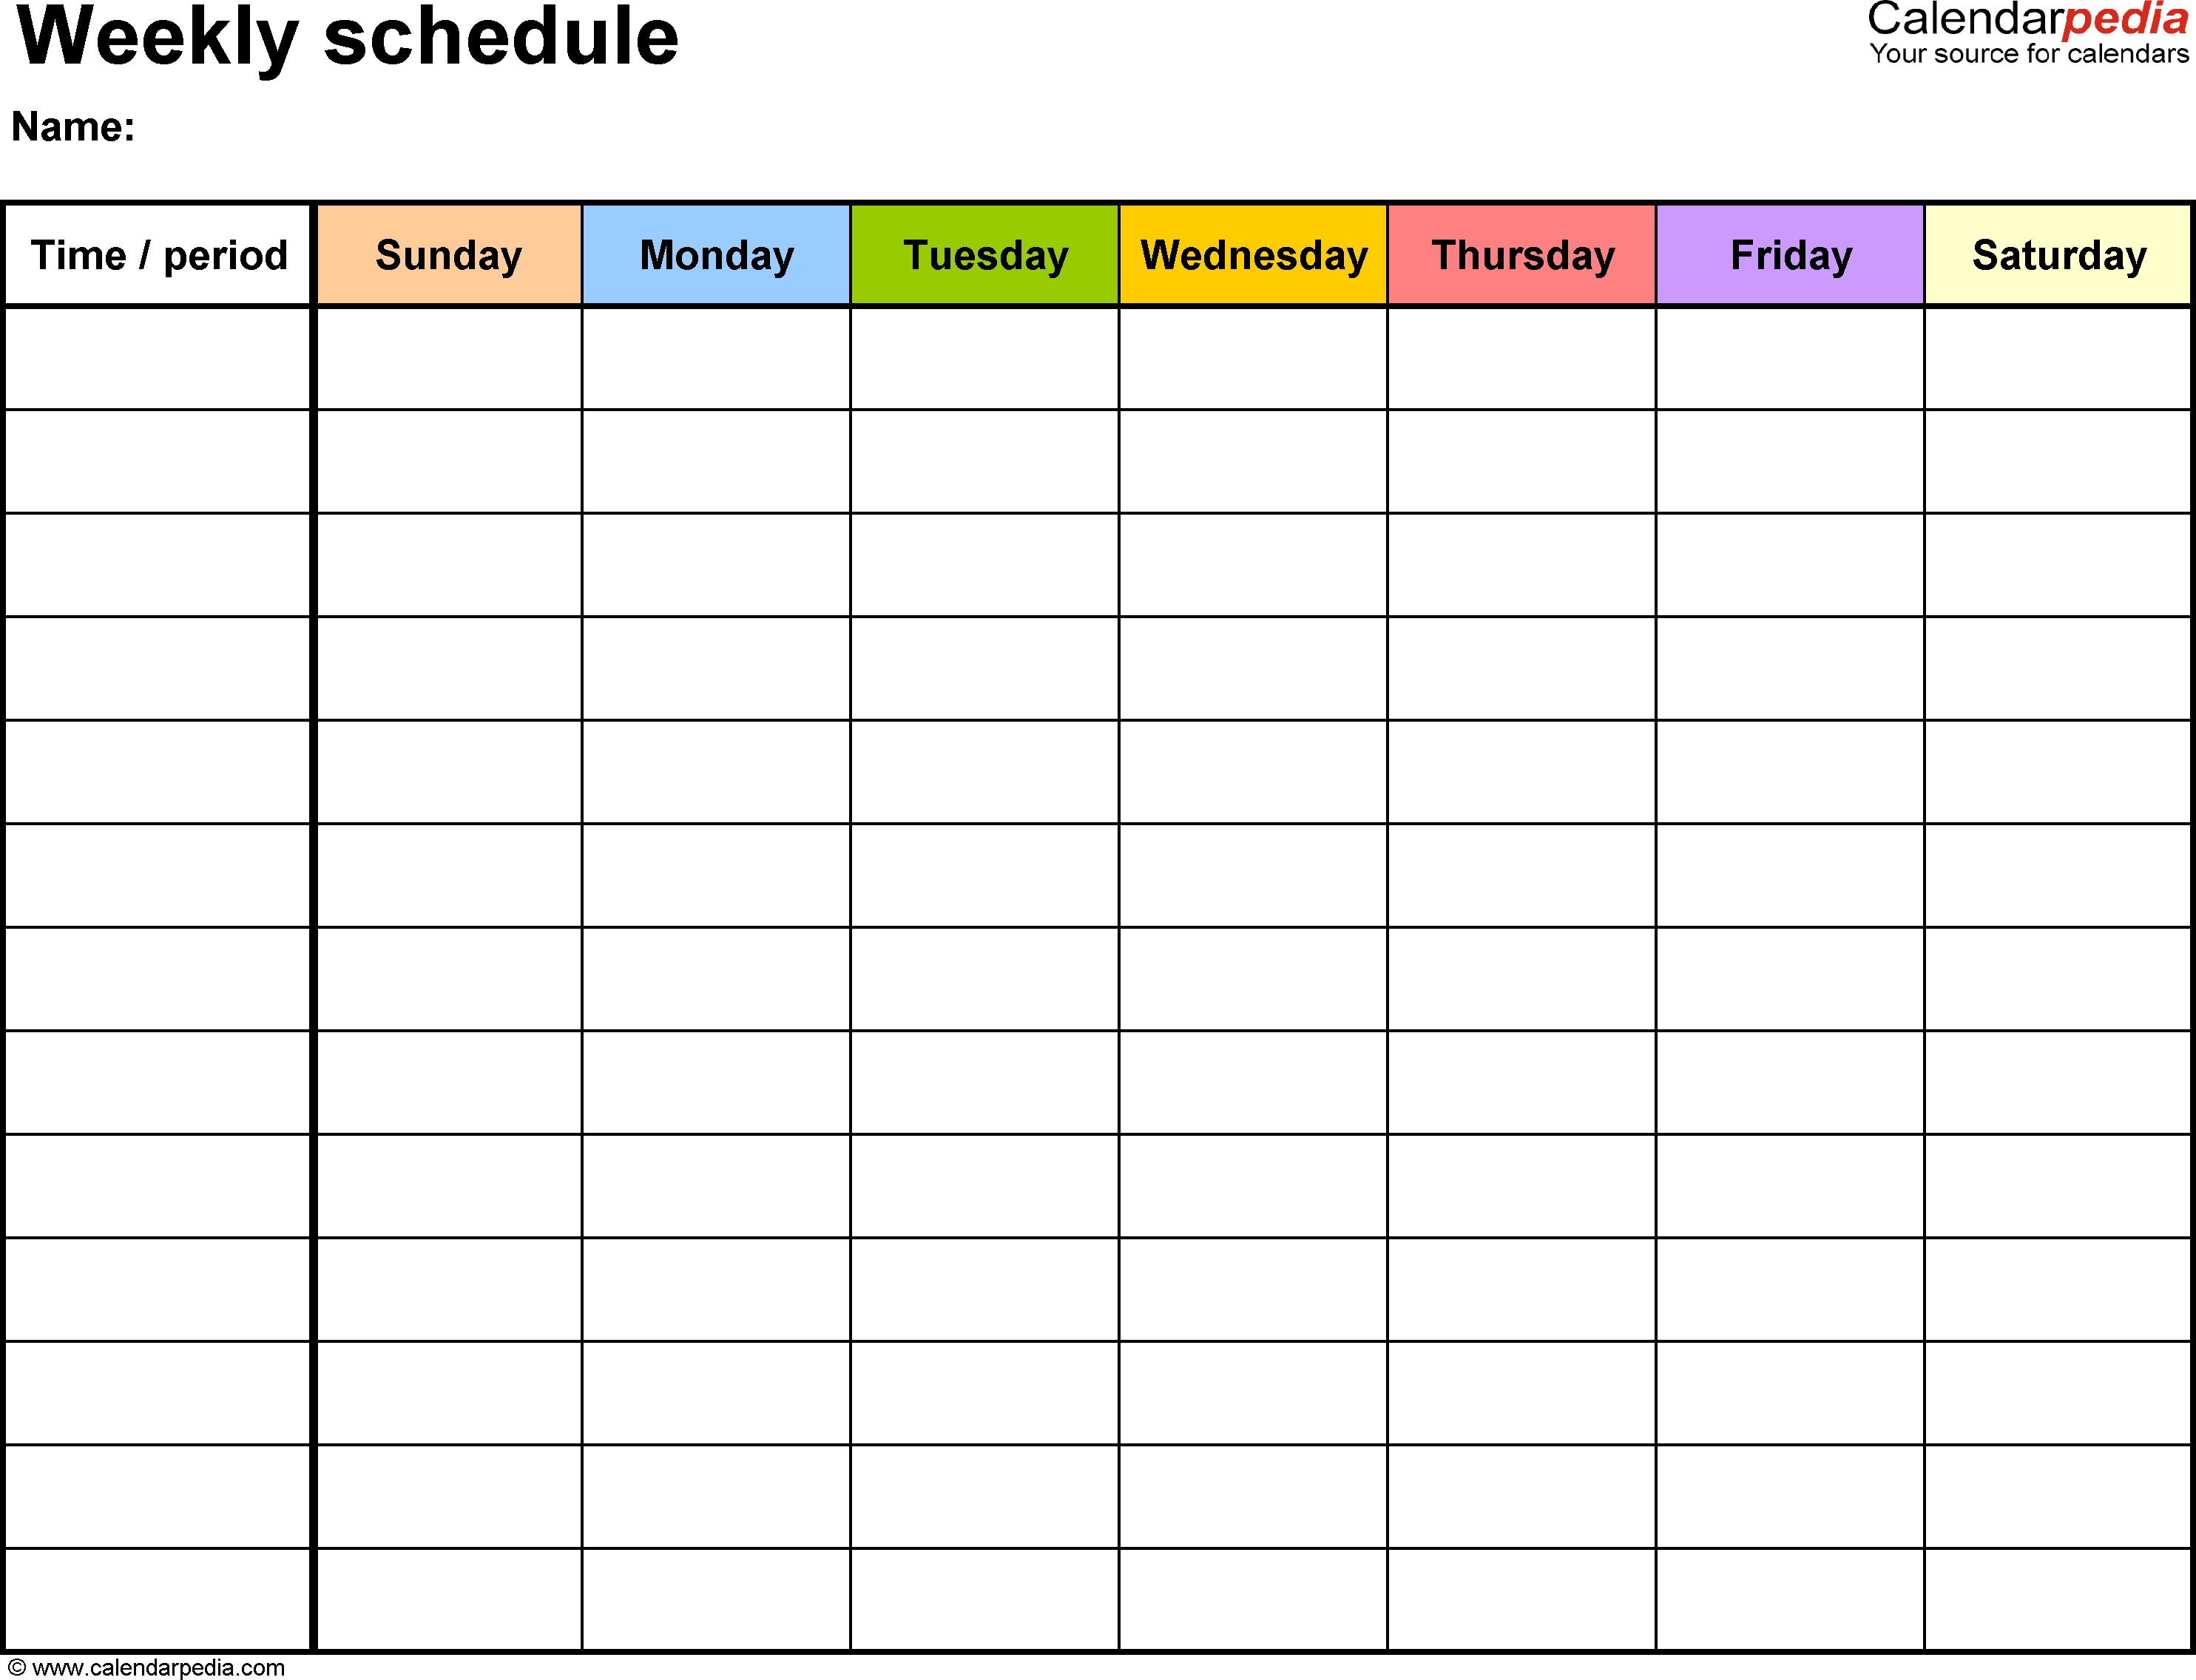 Free Weekly Schedule Templates For Excel - 18 Templates | ~Yoga  Free Blank Printable Weekly Calendar Template